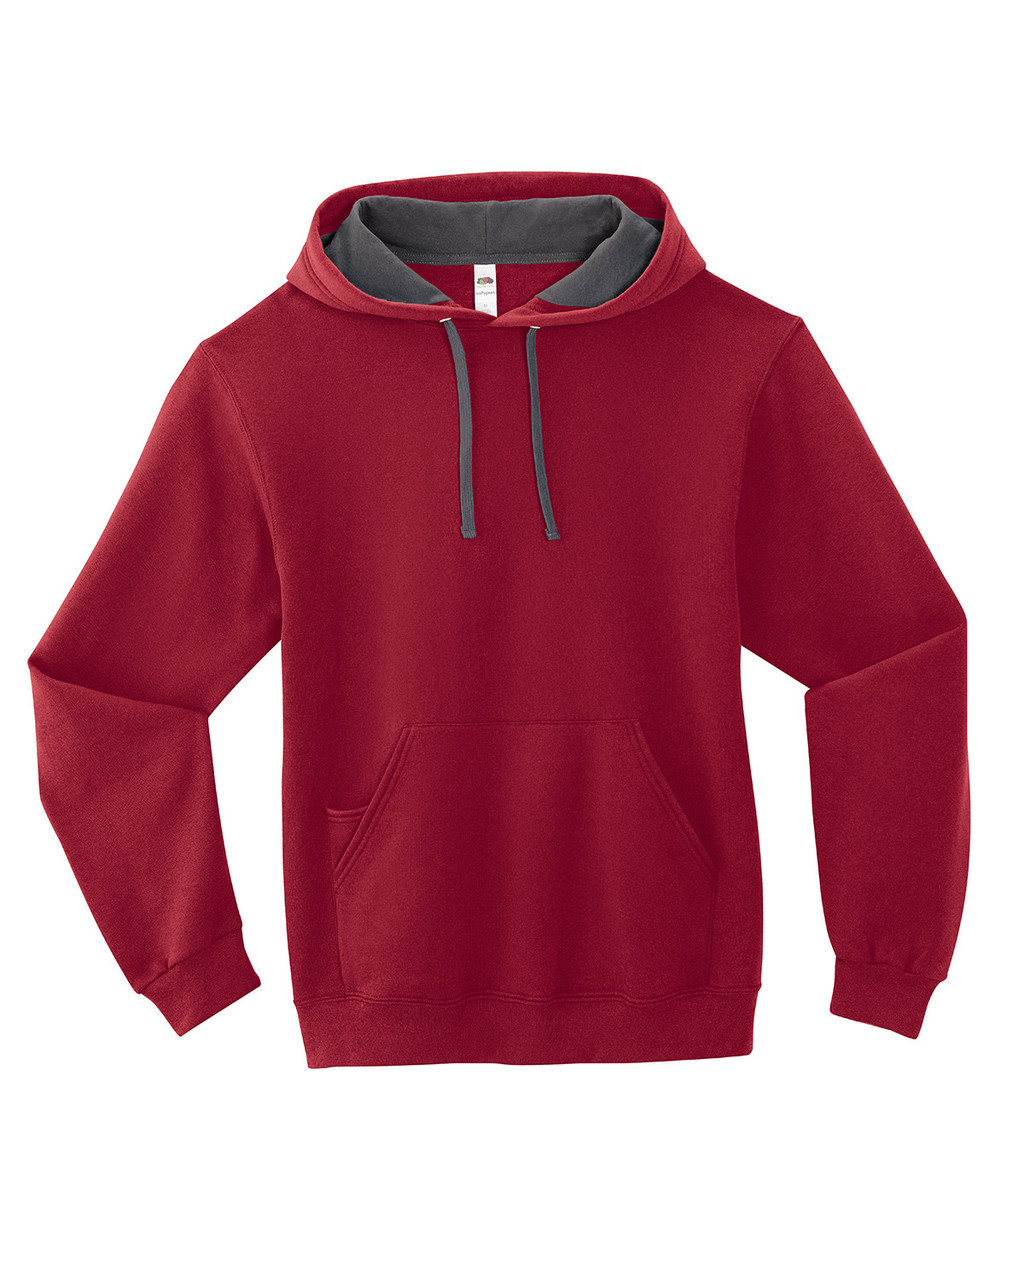 Cardinal - SF76R Fruit of the Loom Softspun Hooded Sweatshirt | Blankclothing.ca